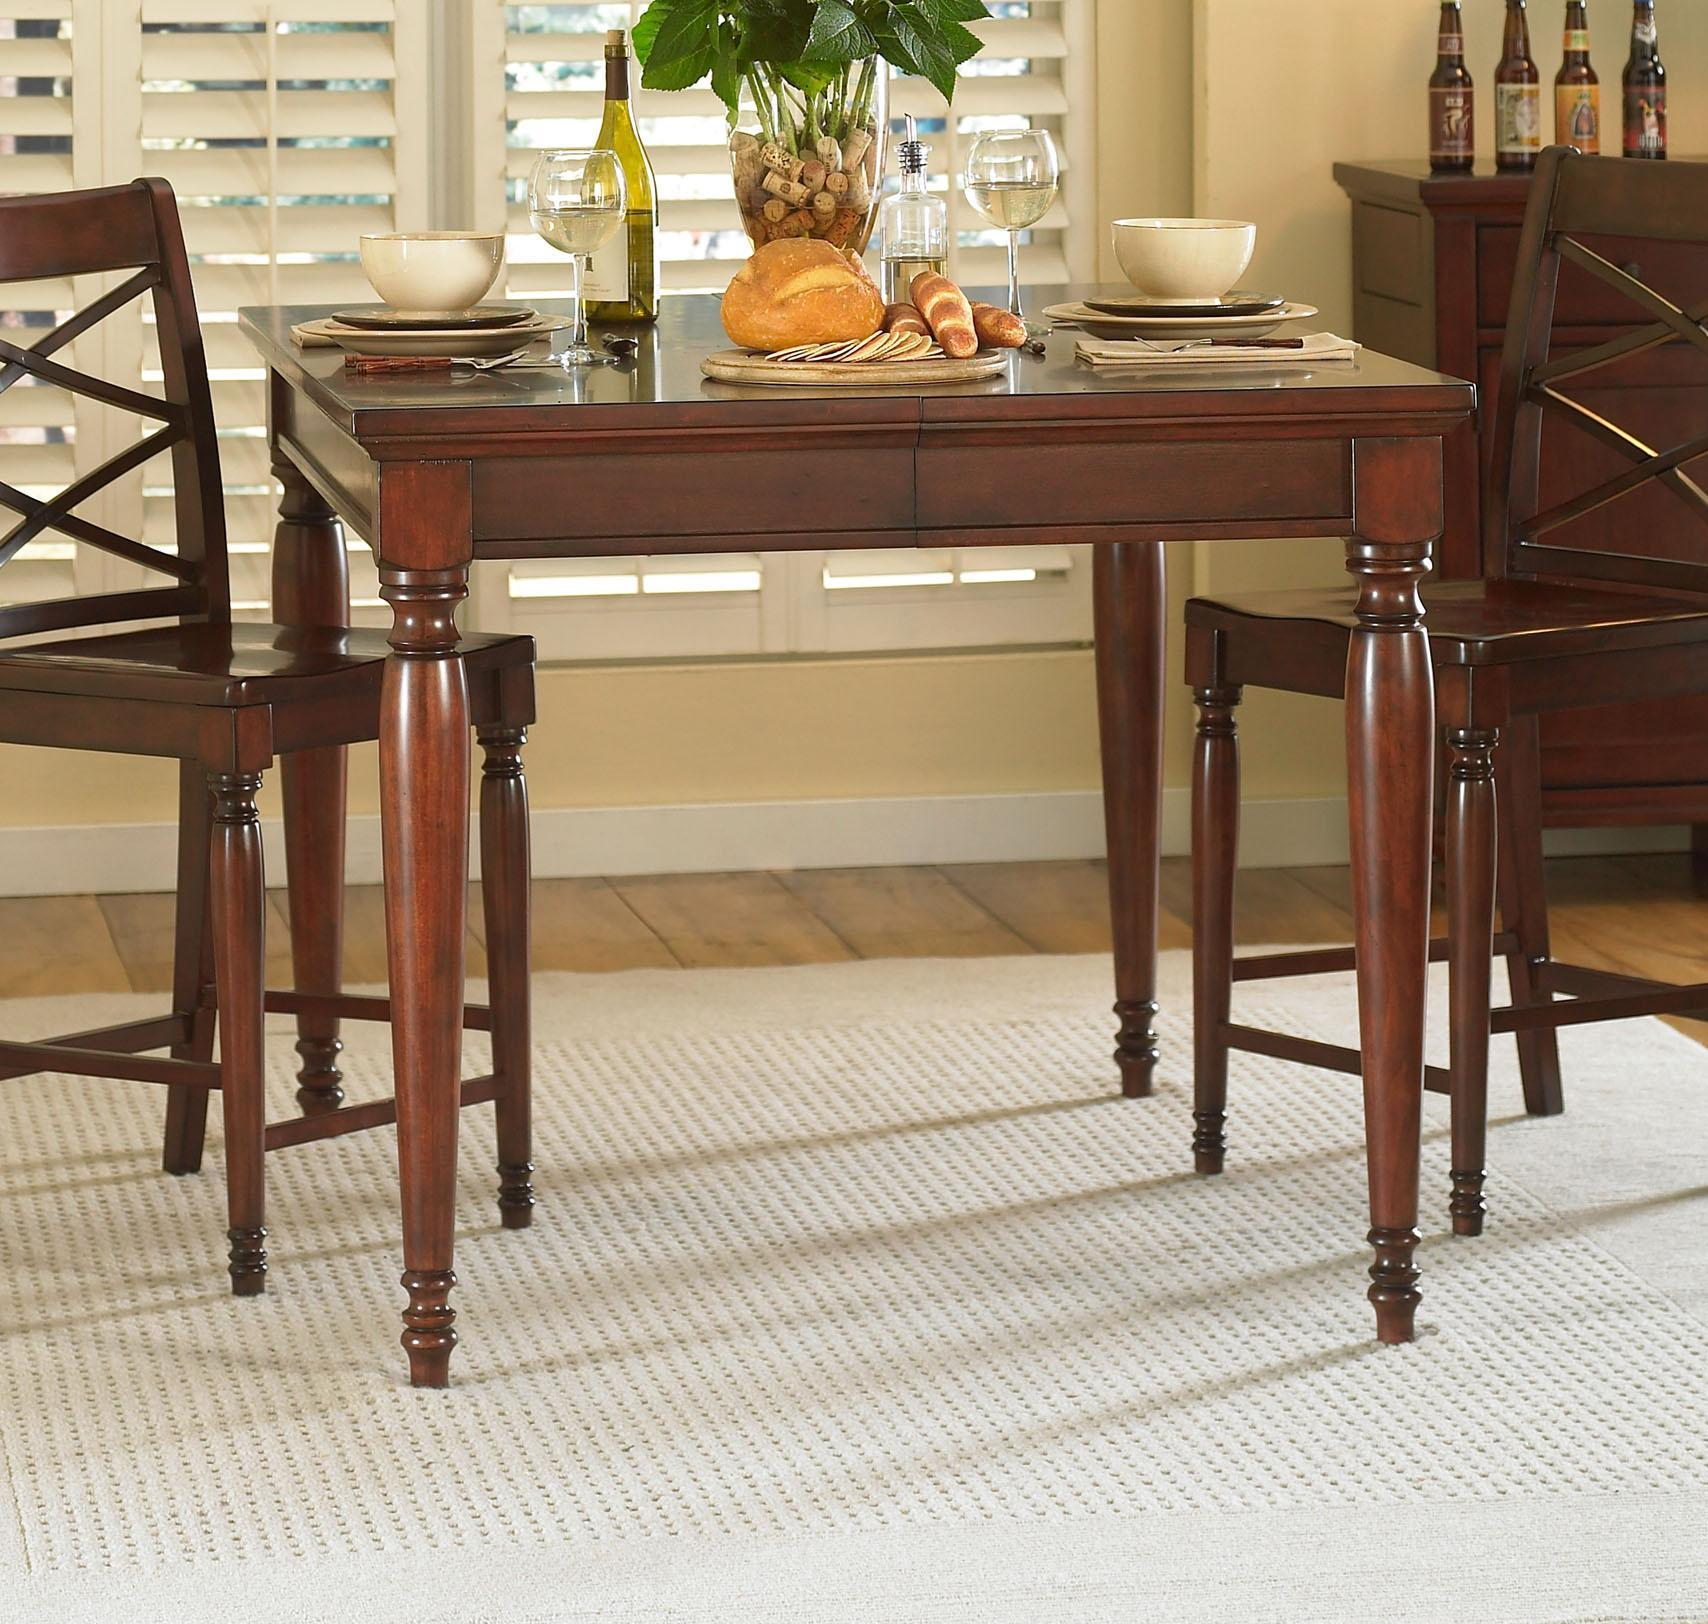 Aspenhome Cambridge Counter Height Table - Item Number: ICB-6252-BCH